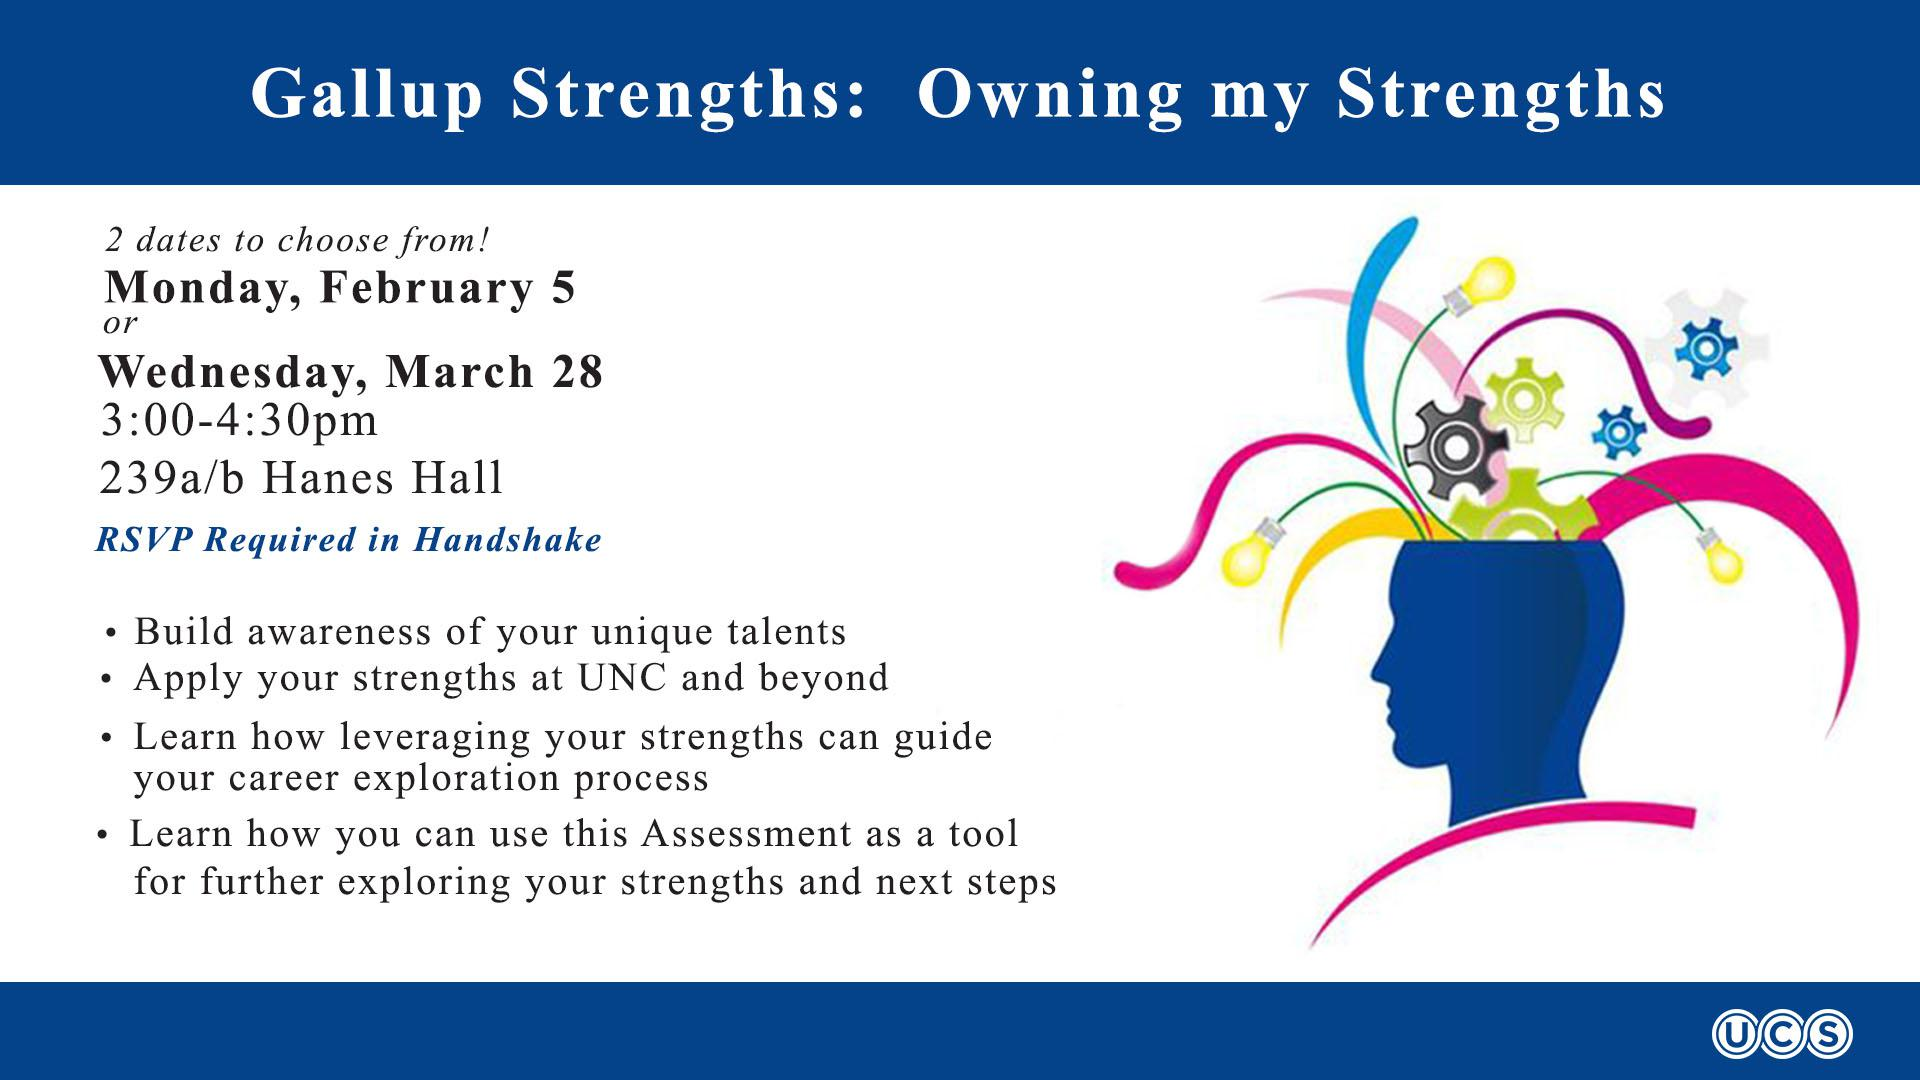 Gallup Strengths- Owning My Strengths- RSVP required in Handshake